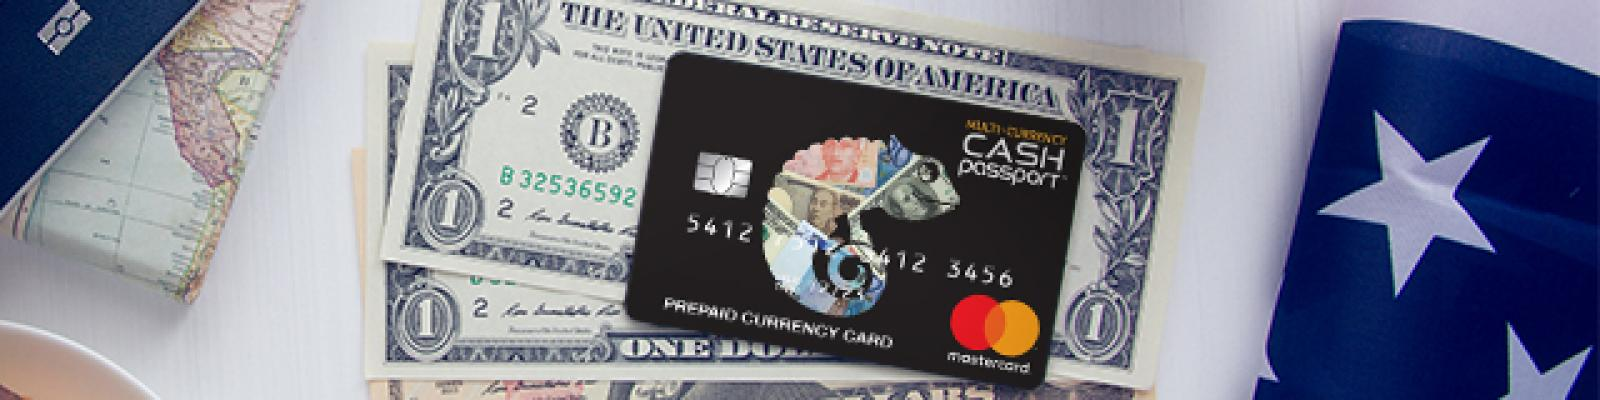 United States Currency with travel money card